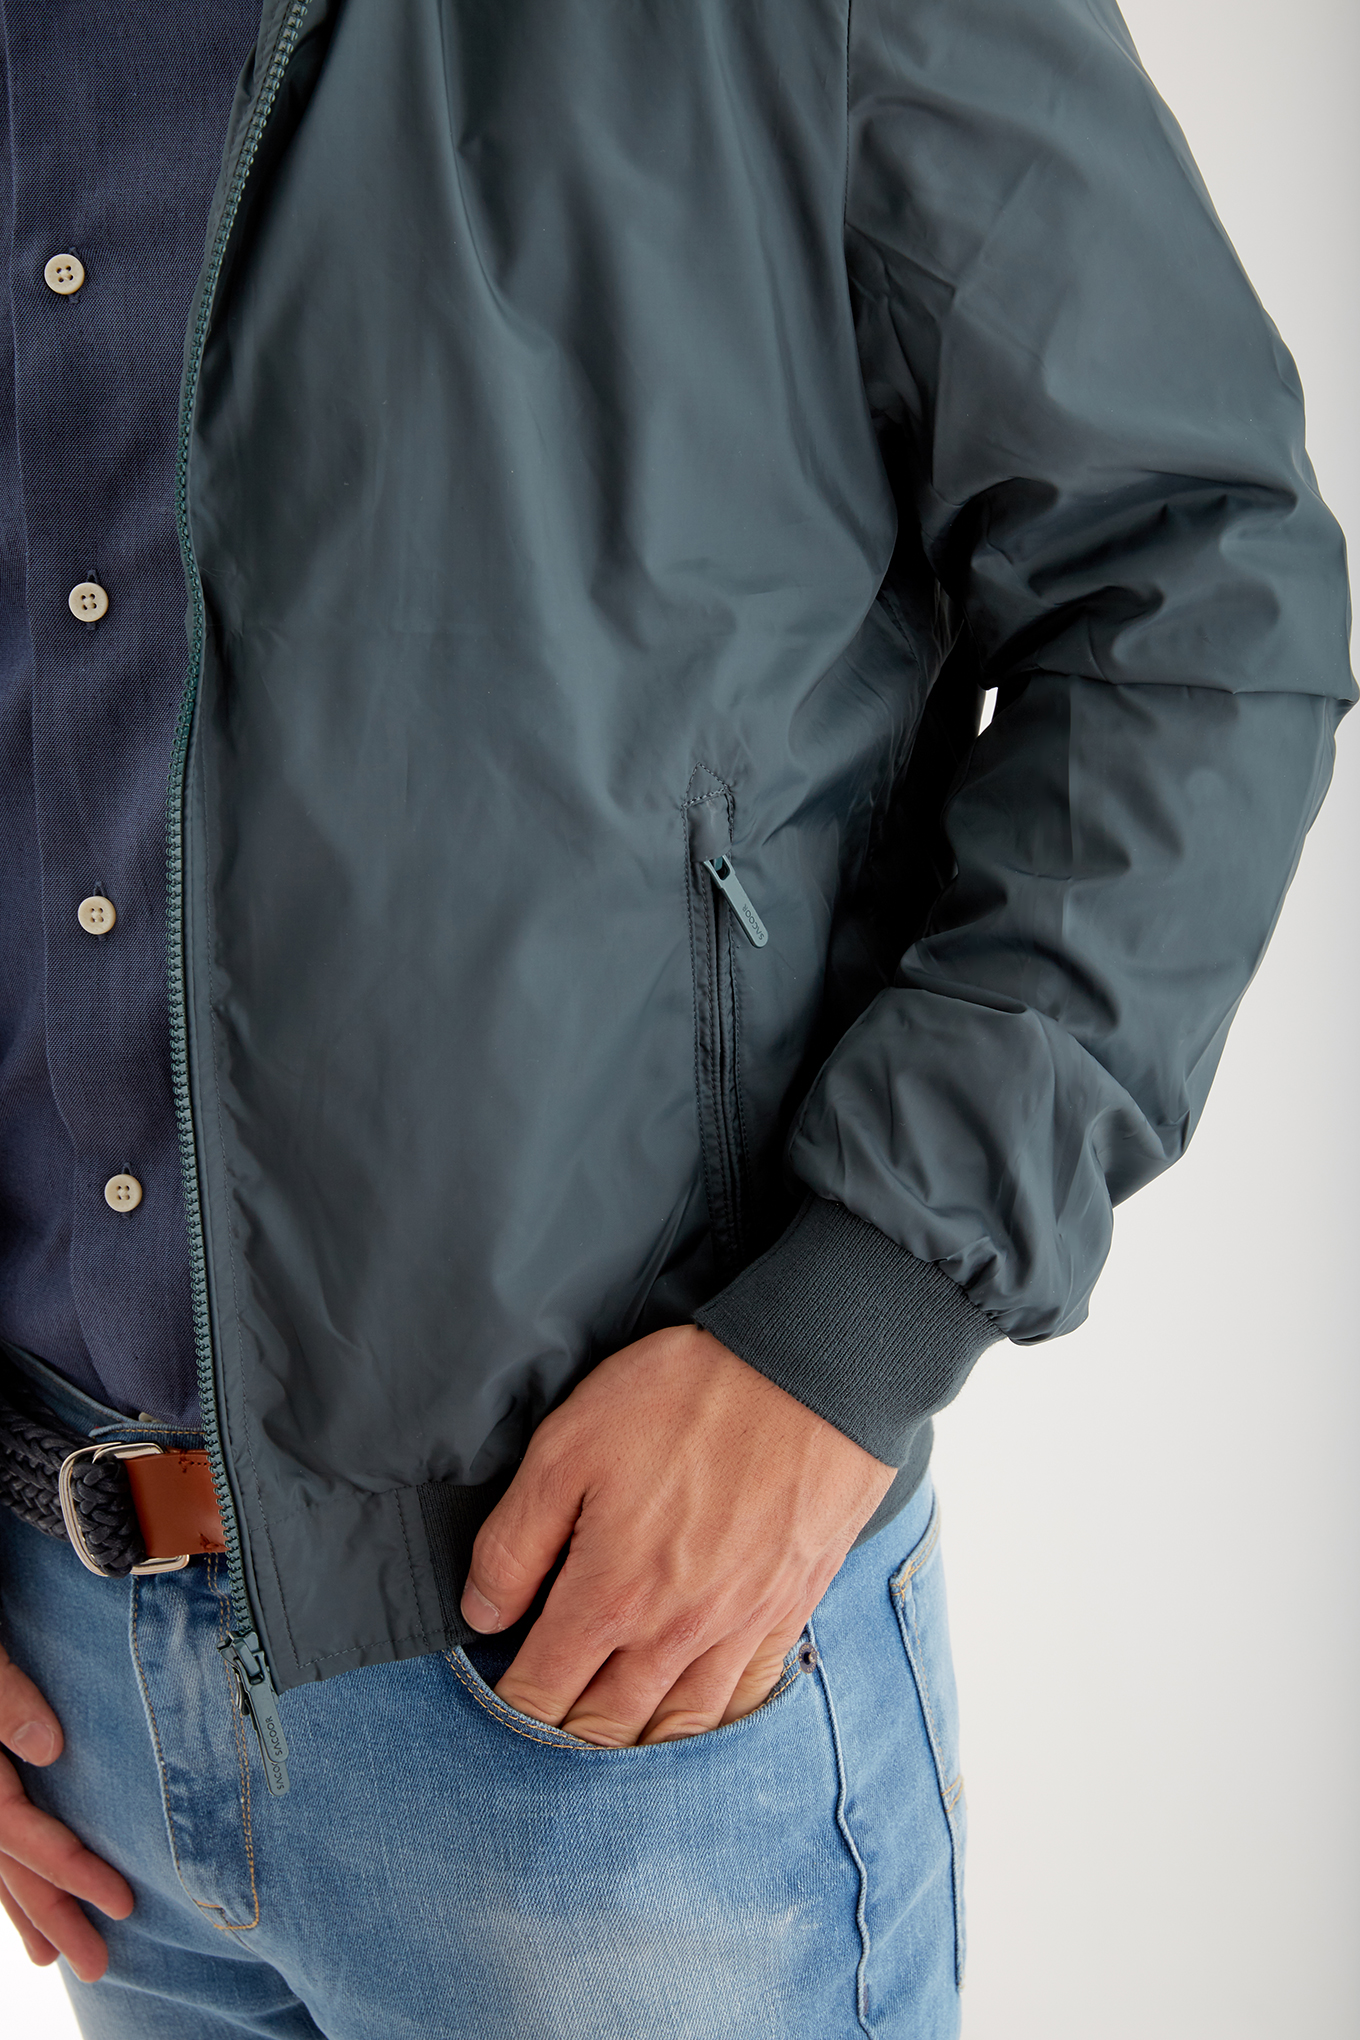 Jacket Dark Green Casual Man